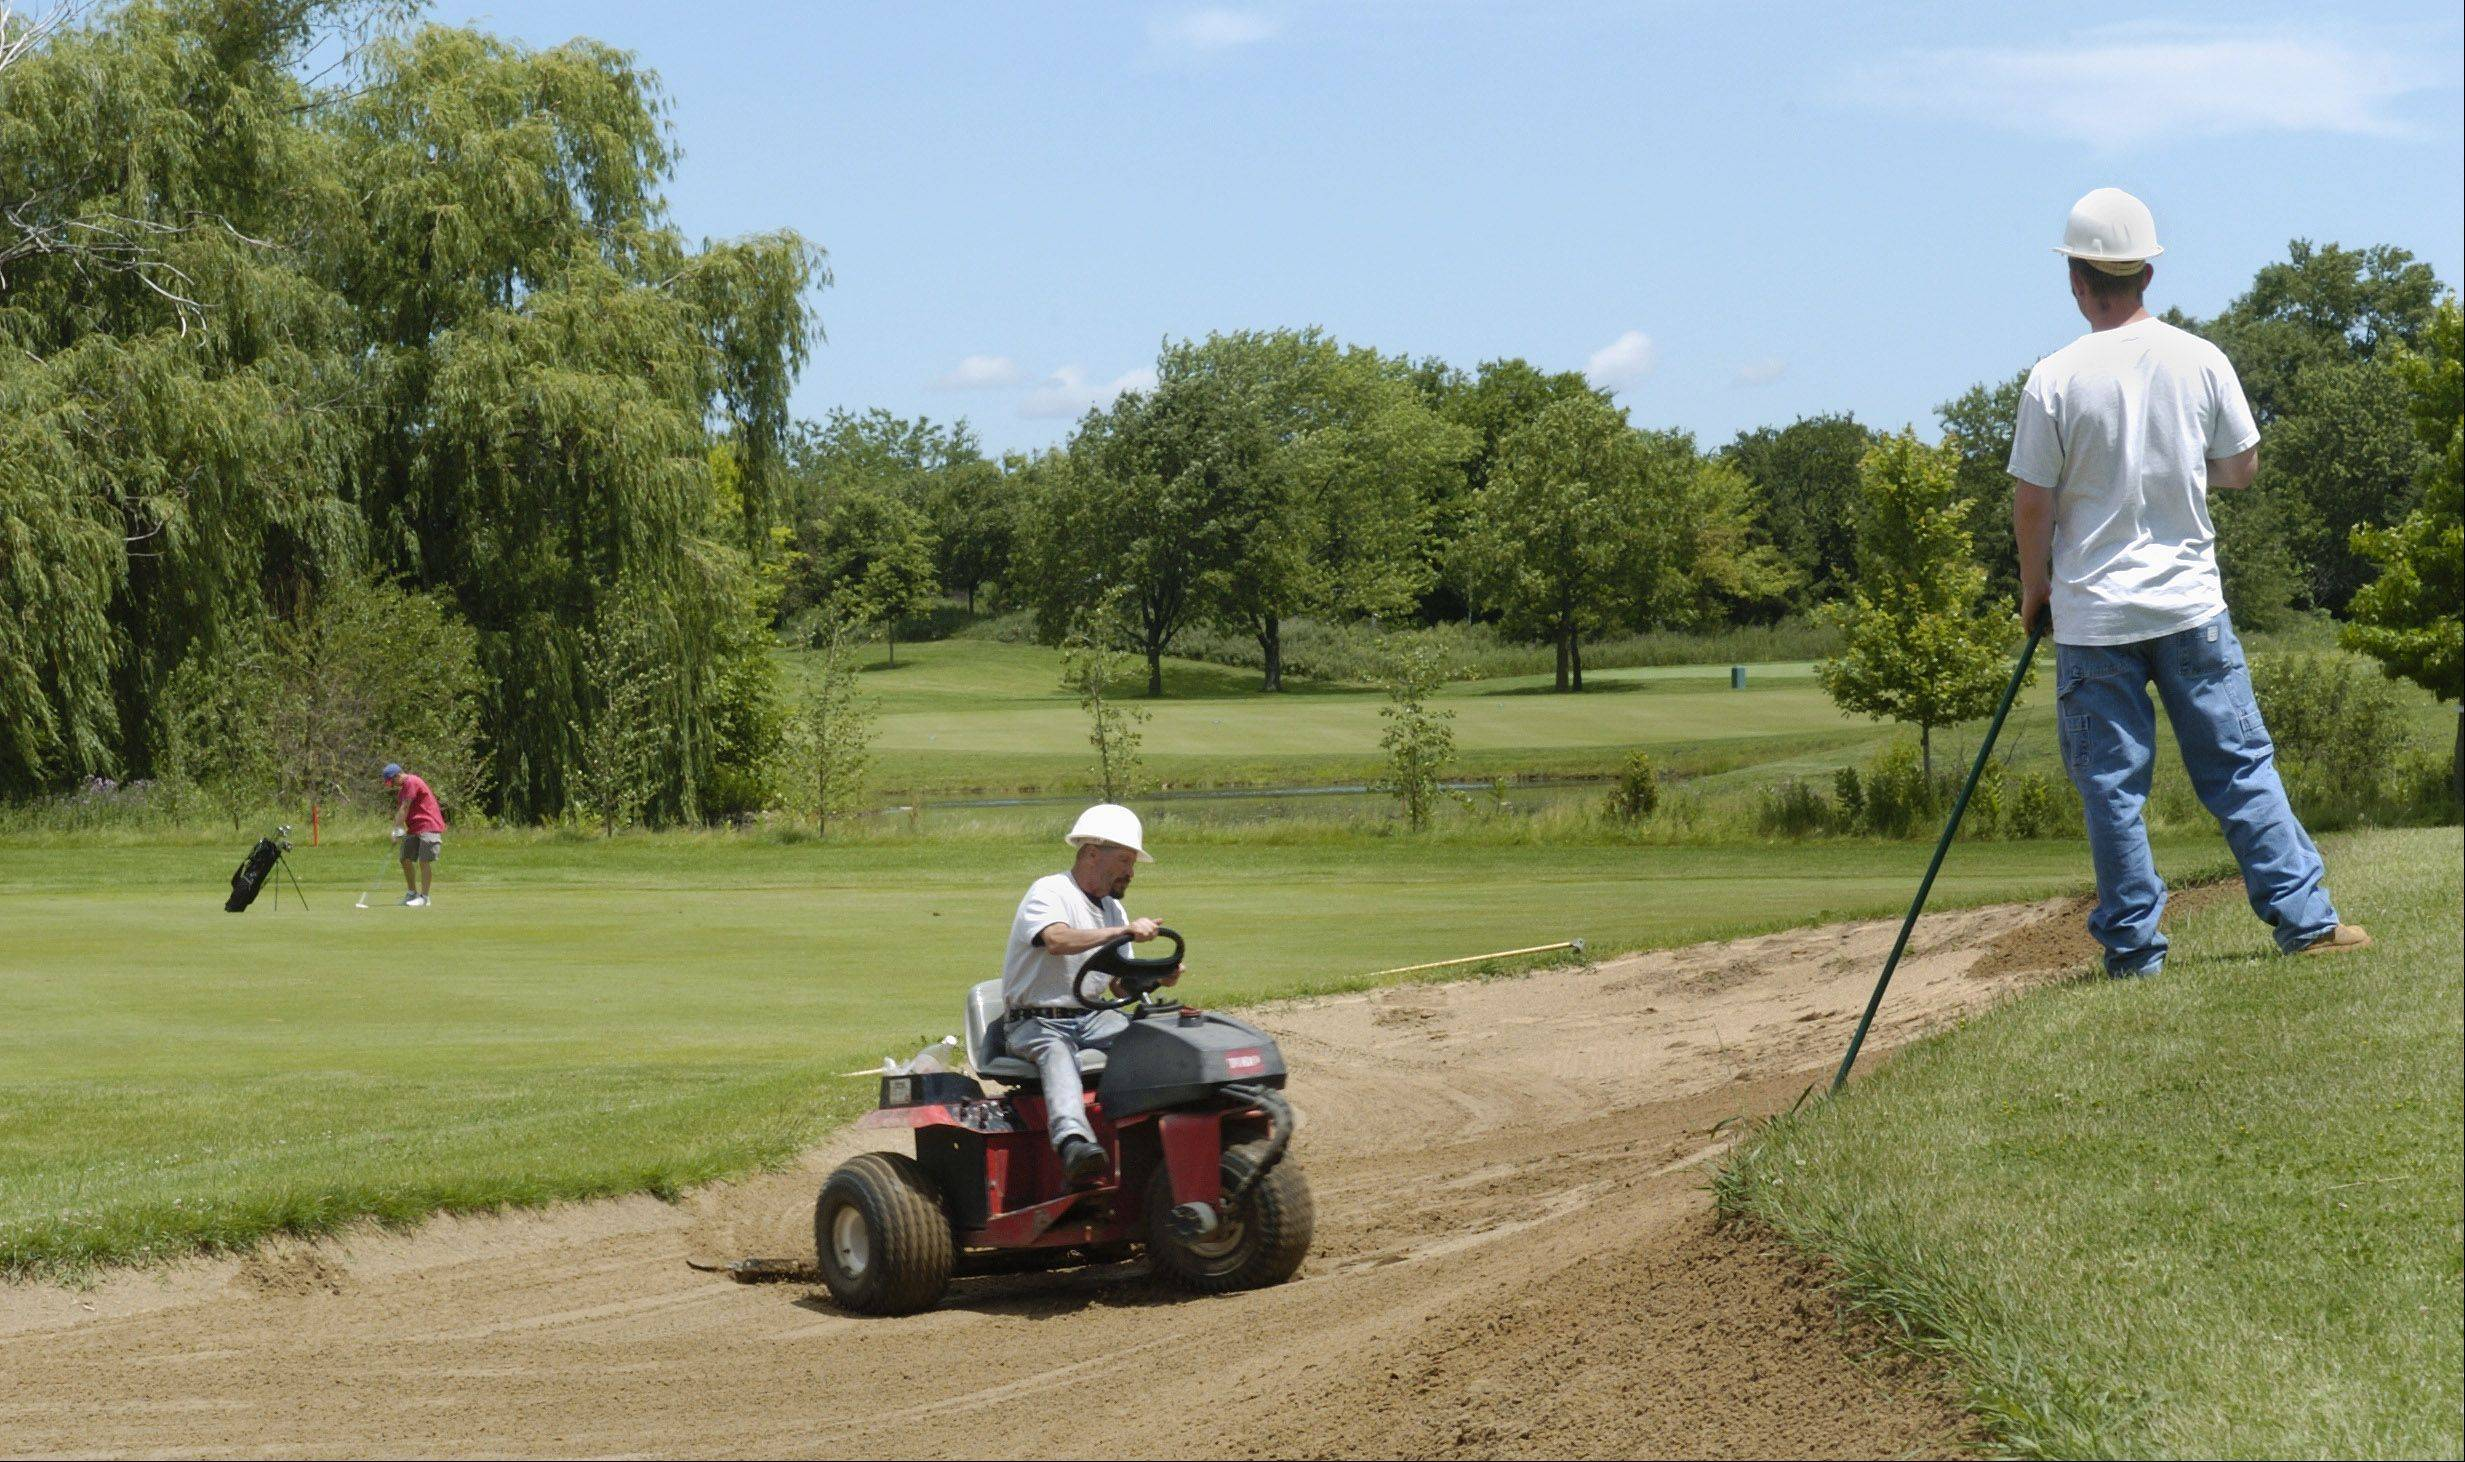 Glen Ellyn looks to generate more cash at golf course